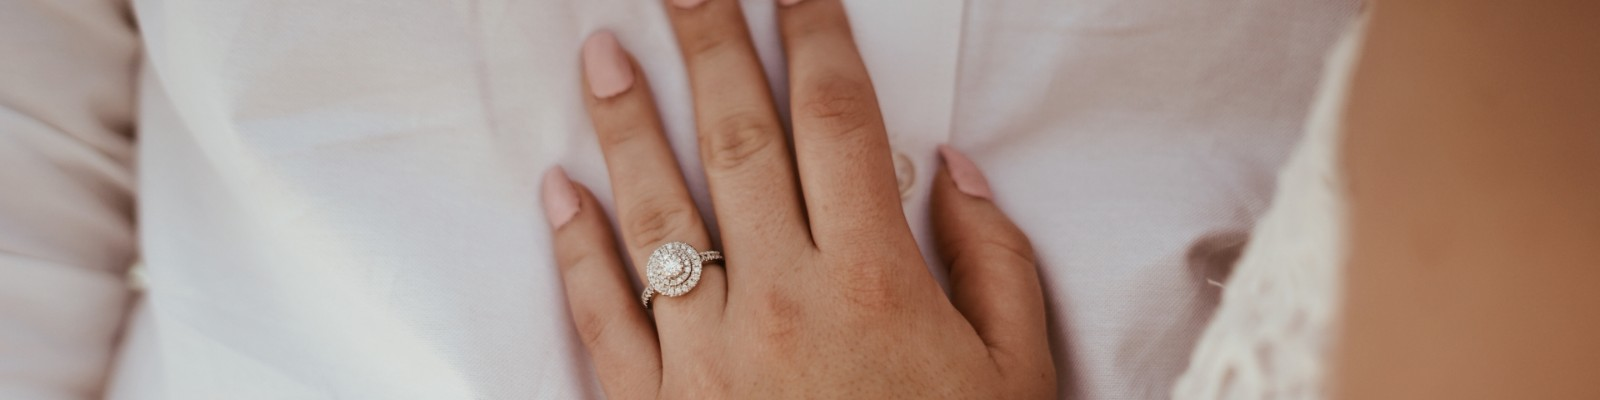 Engagement Ring Styles at Damiani Jewellers